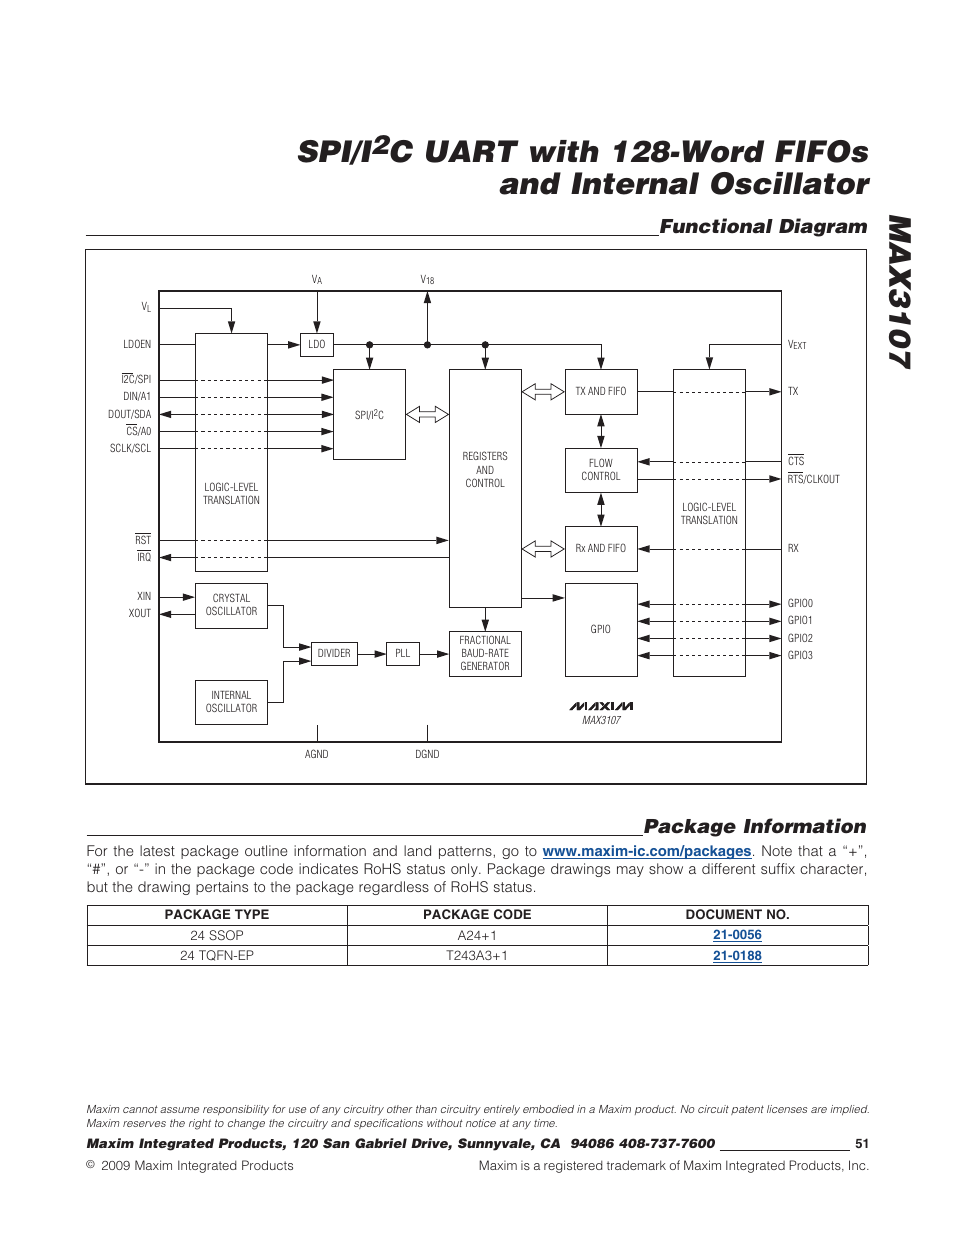 Functional Diagram Package Information Baud Rate Generator Rainbow Electronics Max3107 User Manual Page 51